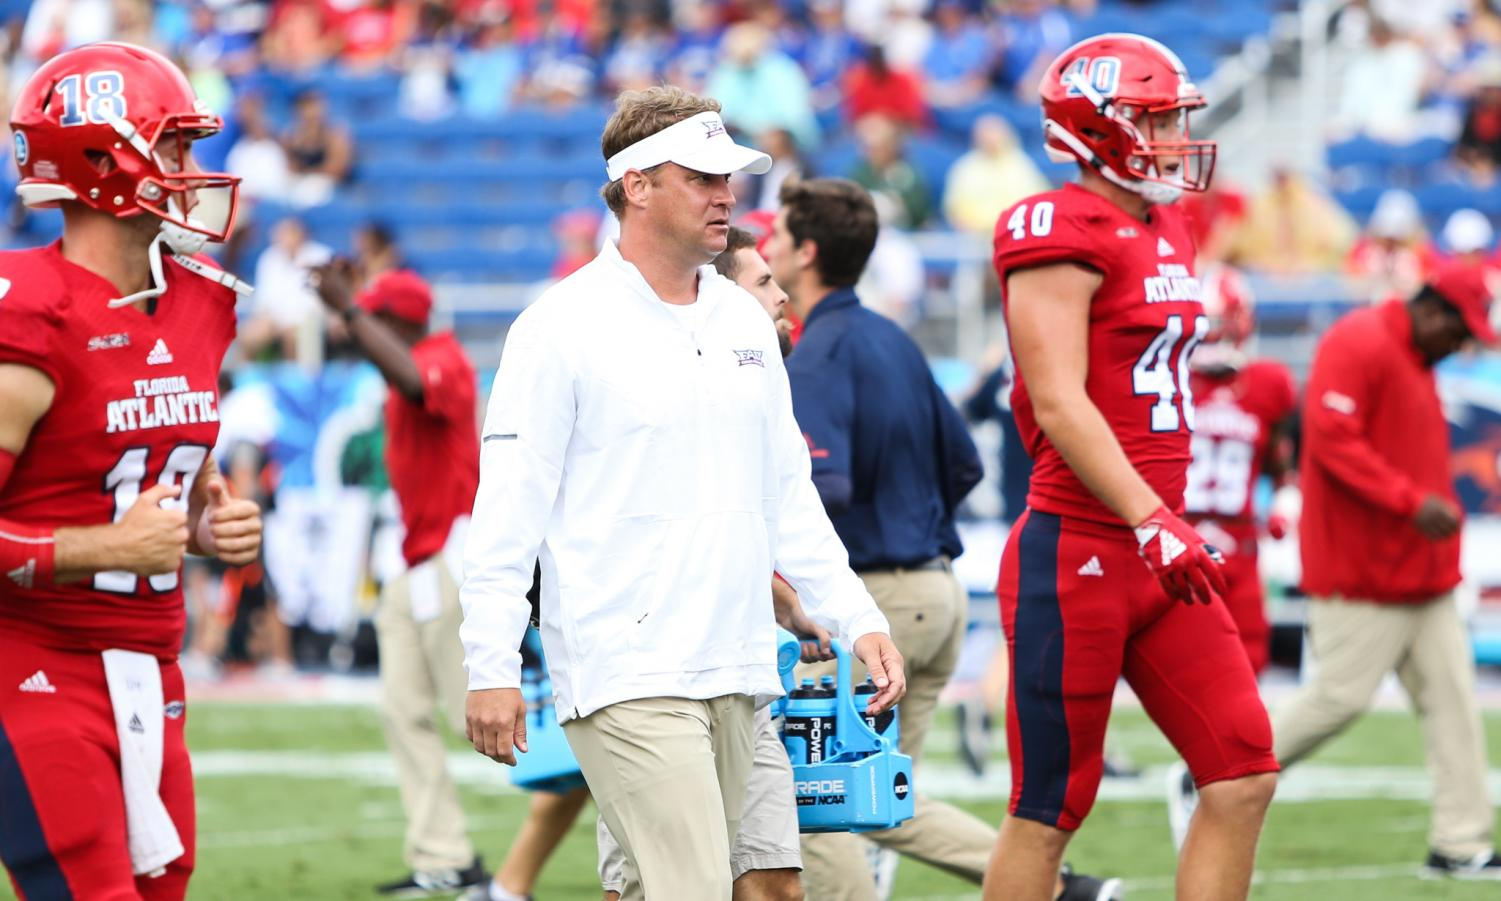 FAU head coach Lane Kiffin once again attracts another former NFL players son, this time being Rahsaan Lewis. Photo by: Alexander Rodriguez